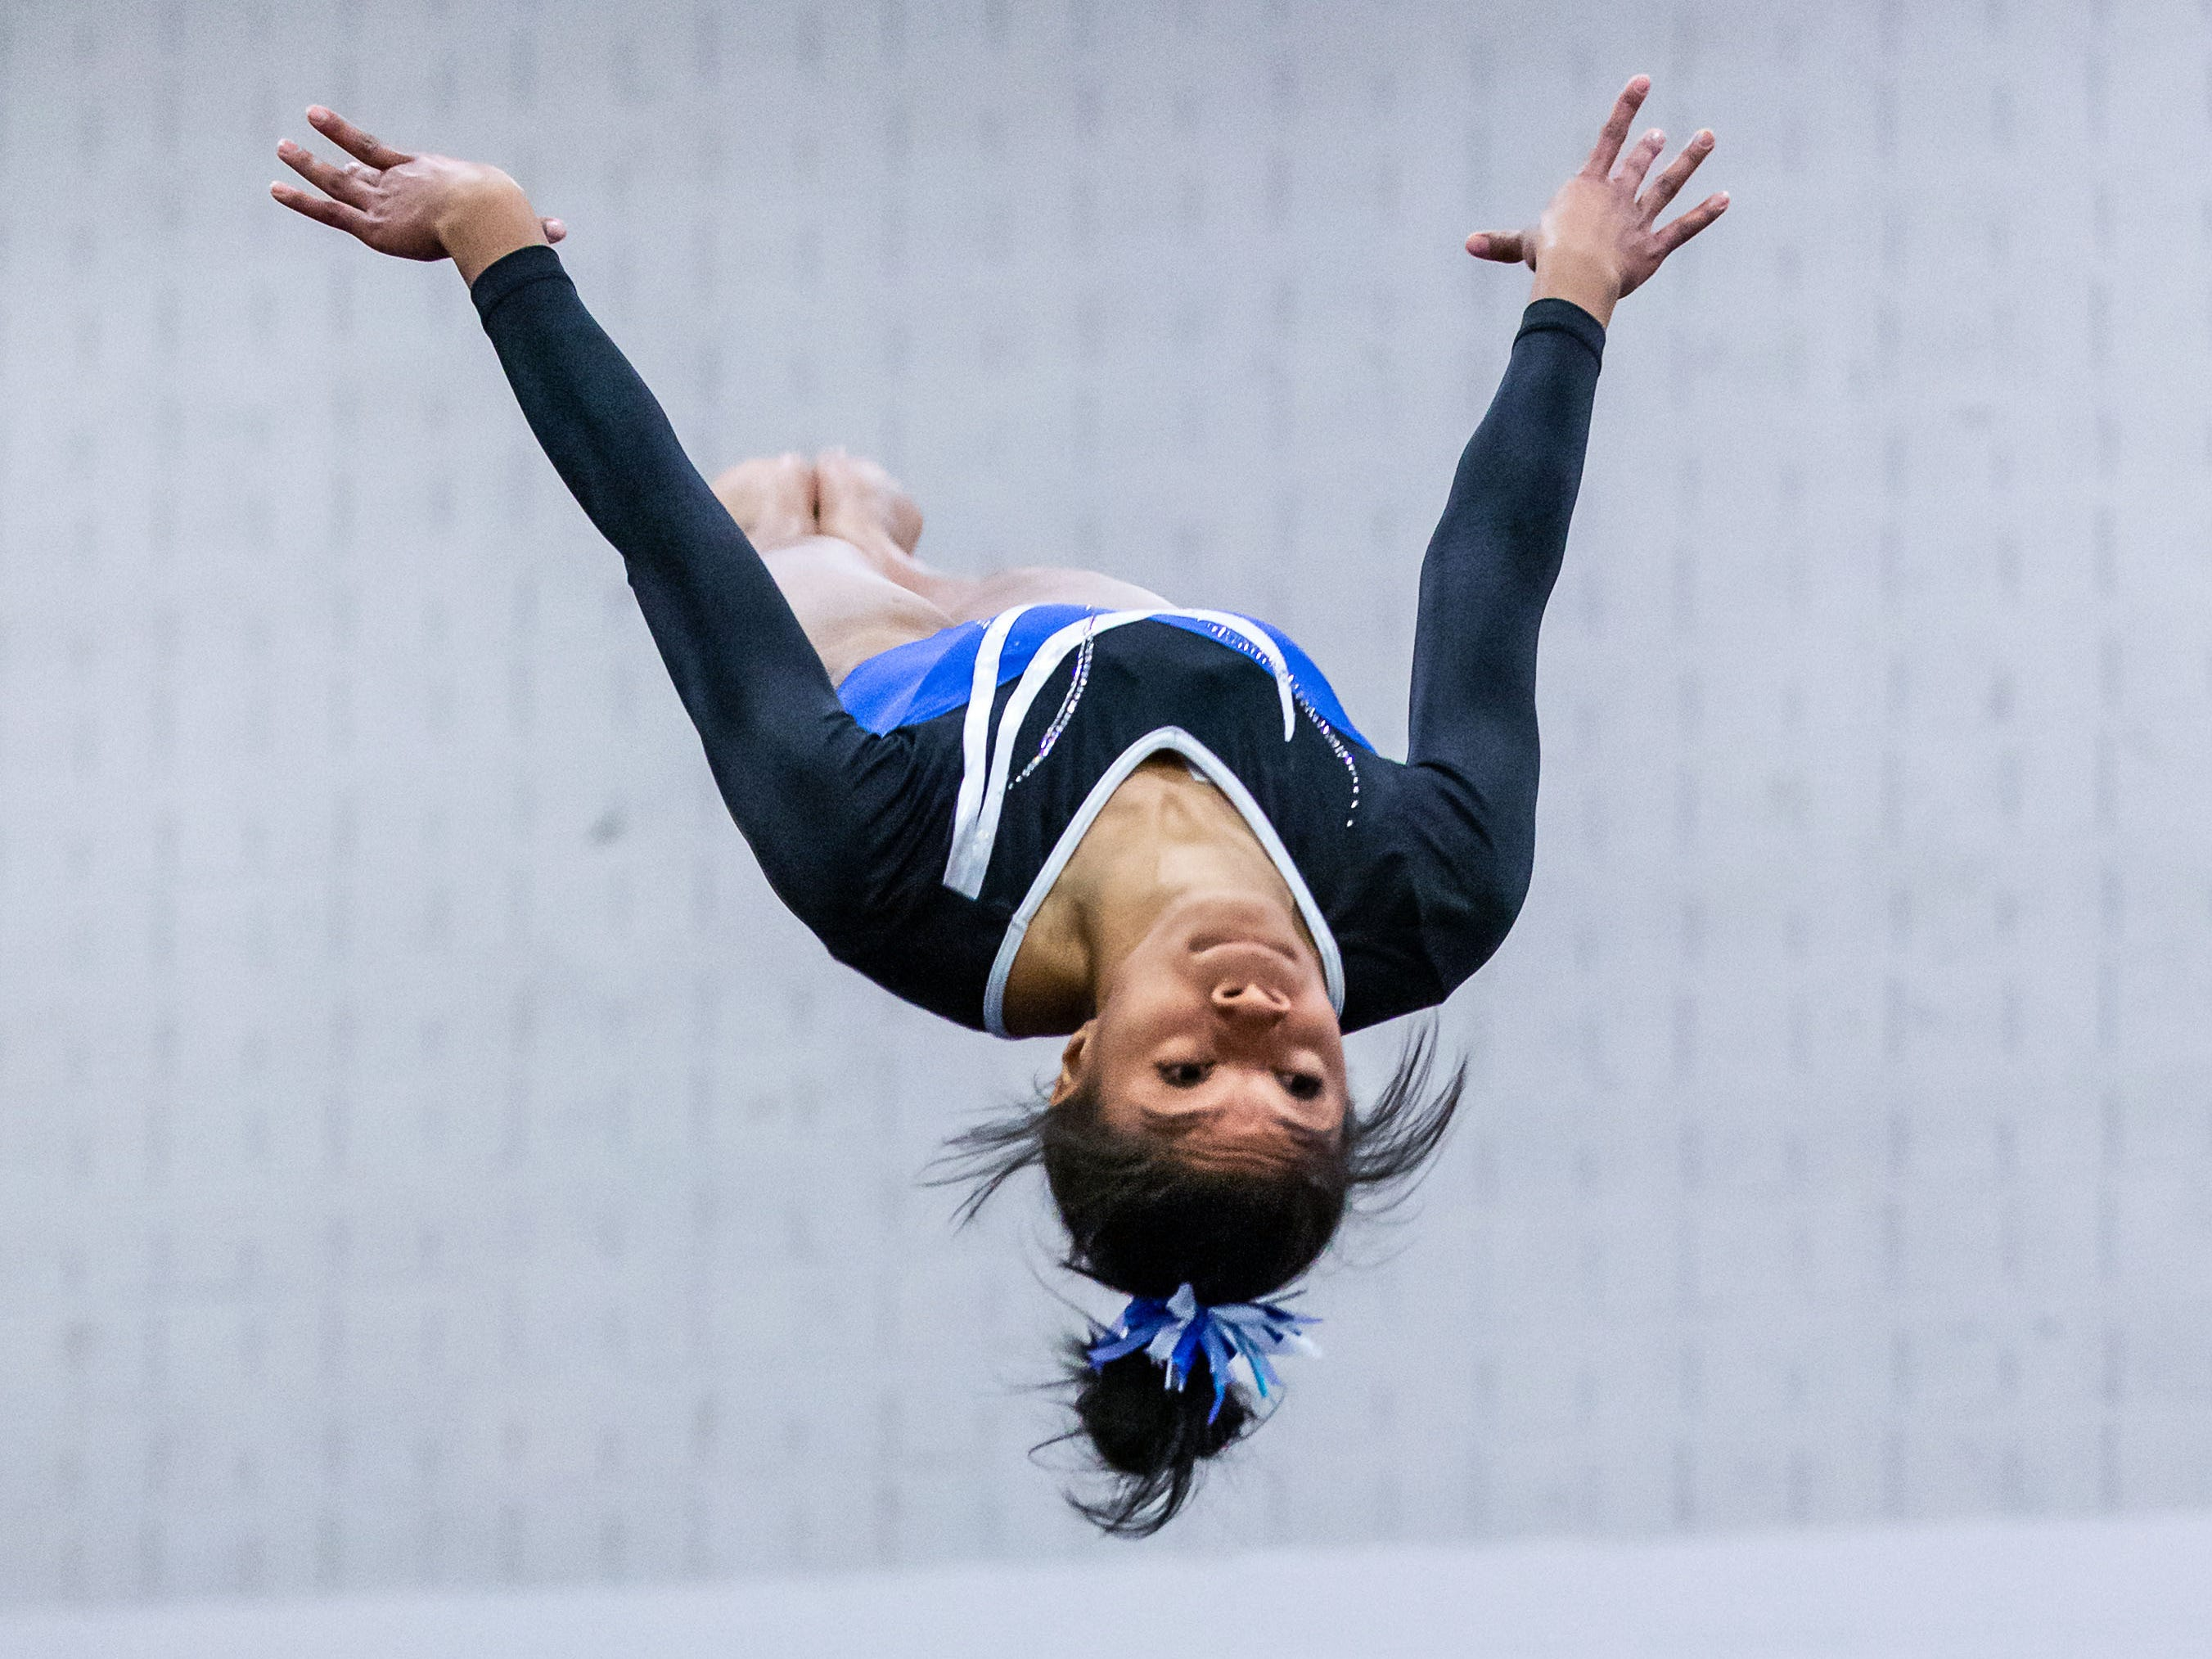 Nicolet gymnast Kynnedi Malone competes on the floor during the meet at home against Whitefish Bay on Thursday, Jan. 3, 2019.